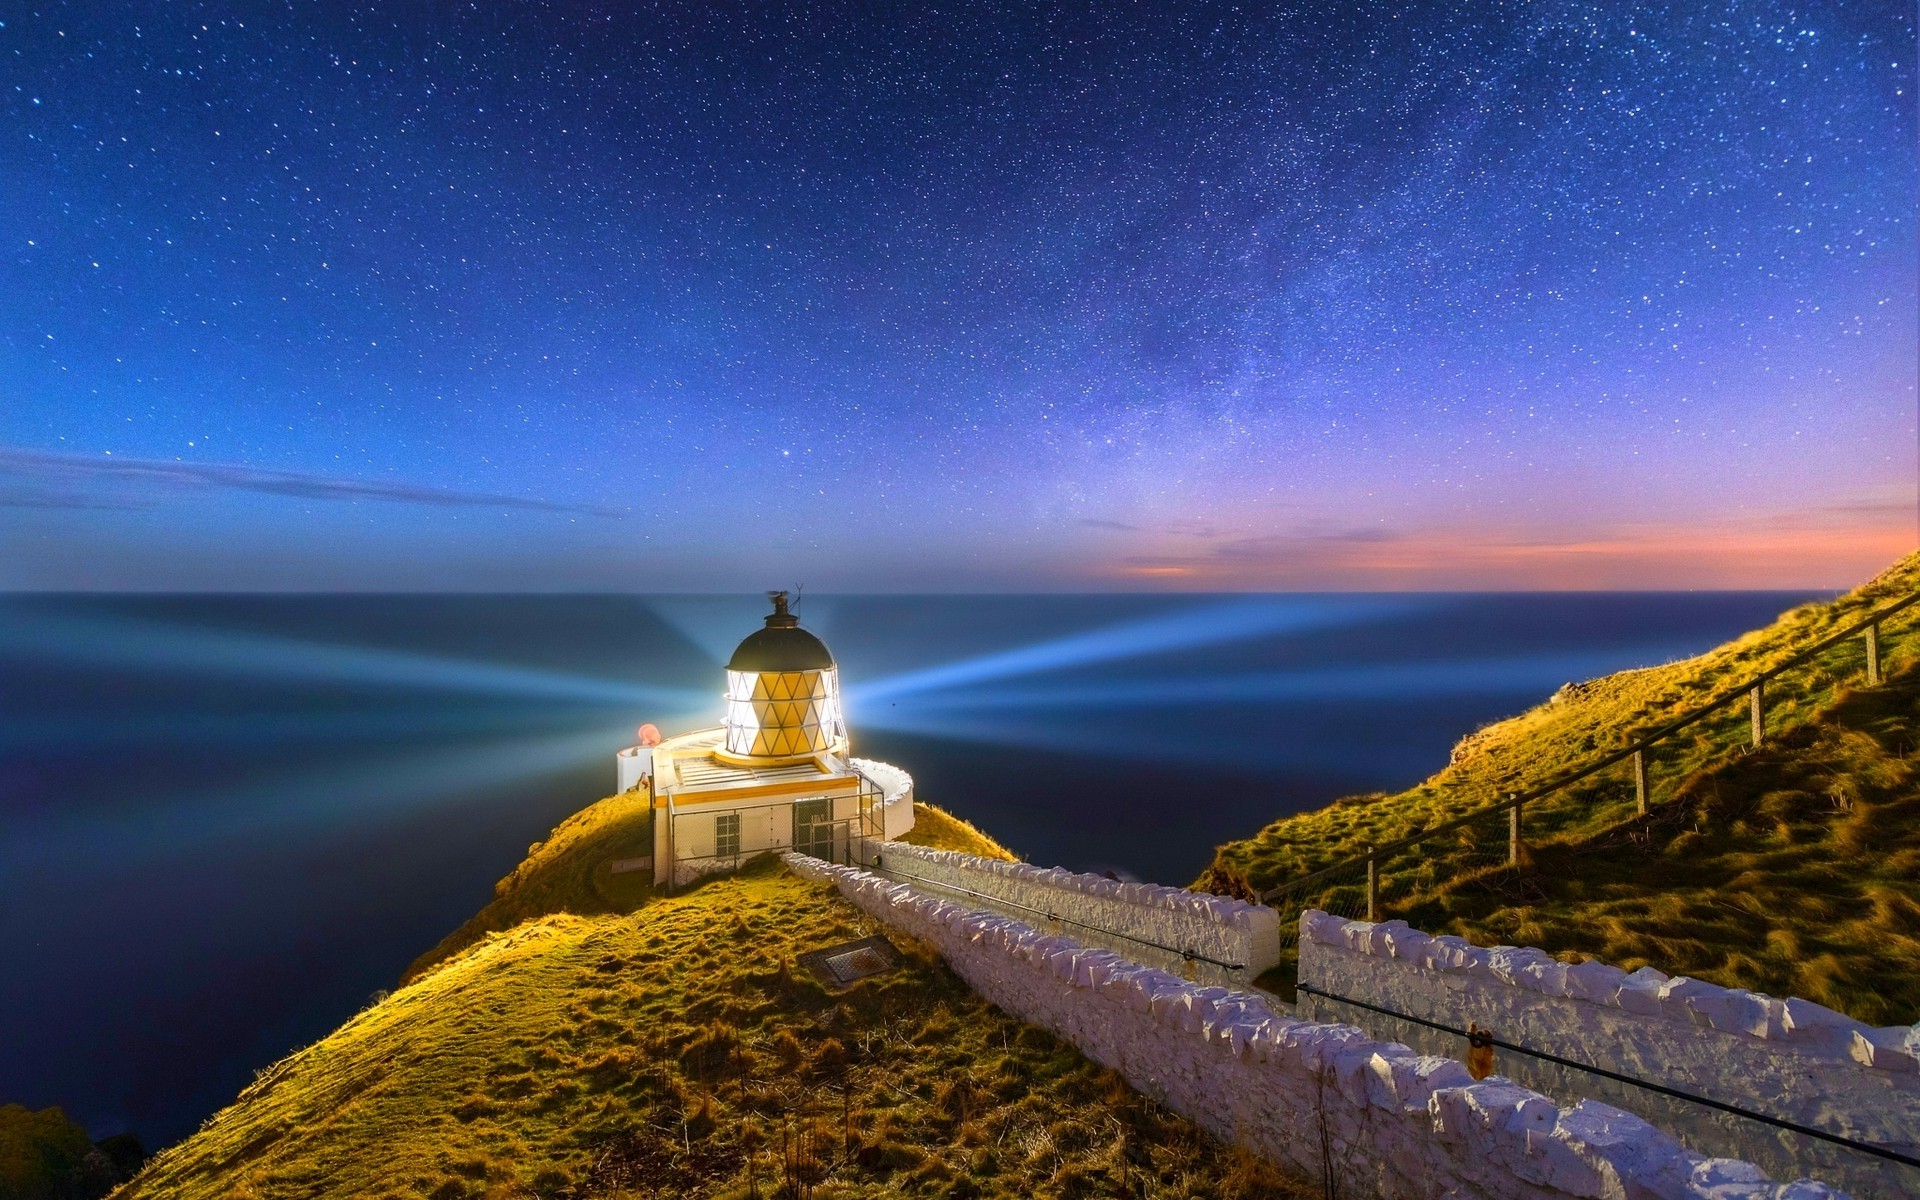 1920x1200 nature, Landscape, Lighthouse, Scotland, Starry Night, Sea, Long Exposure,